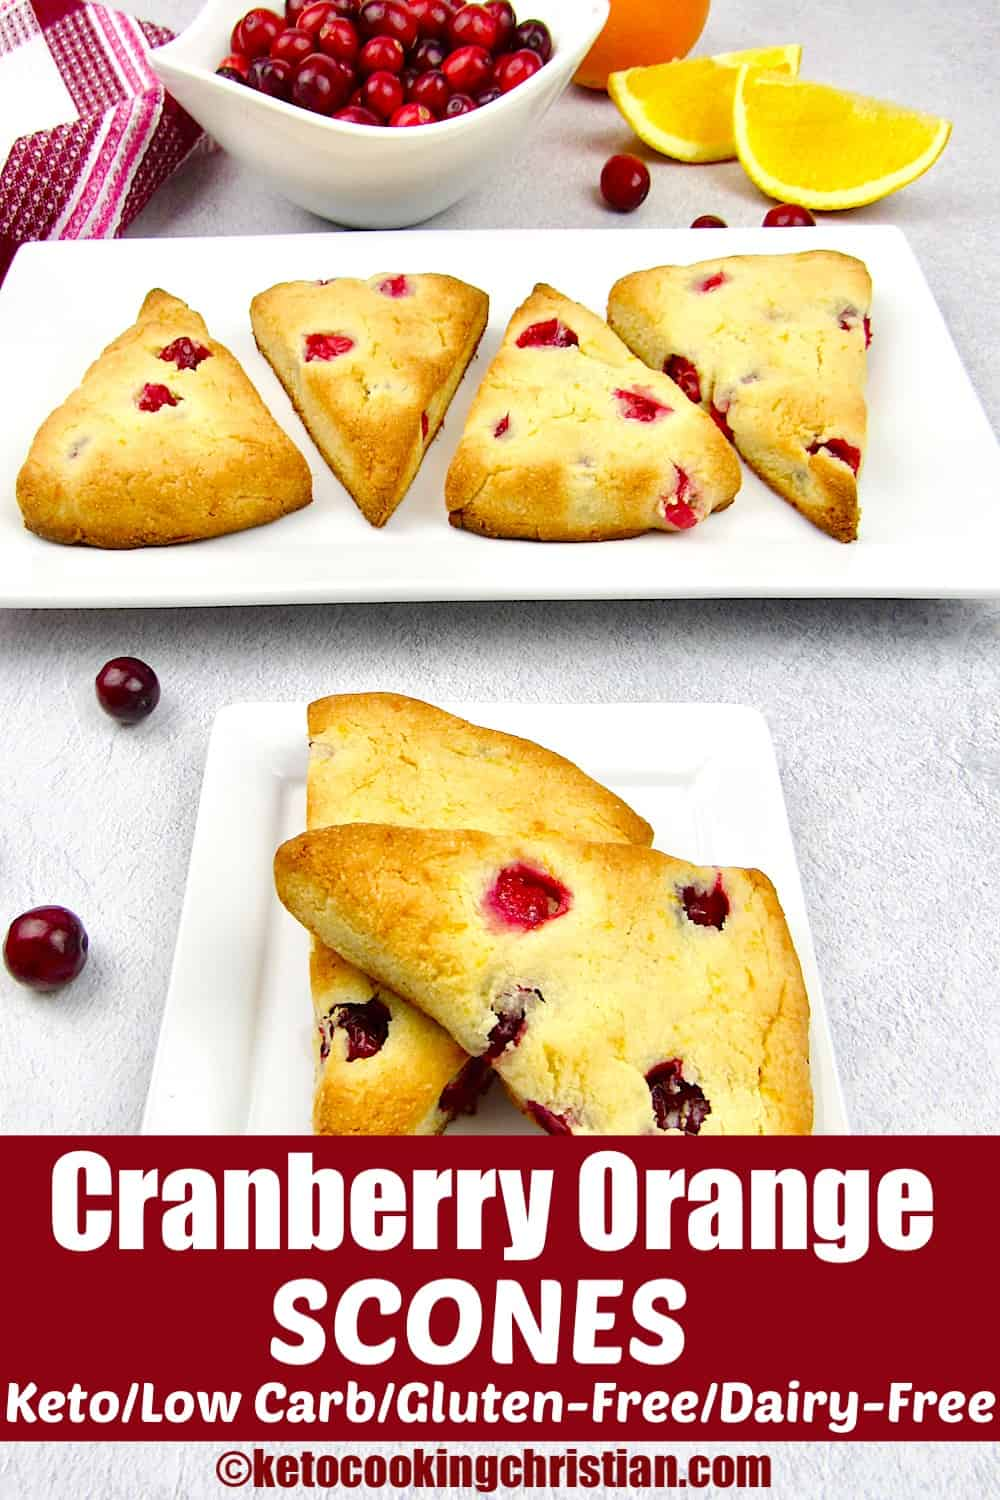 closeup of cranberry scones with more in the background